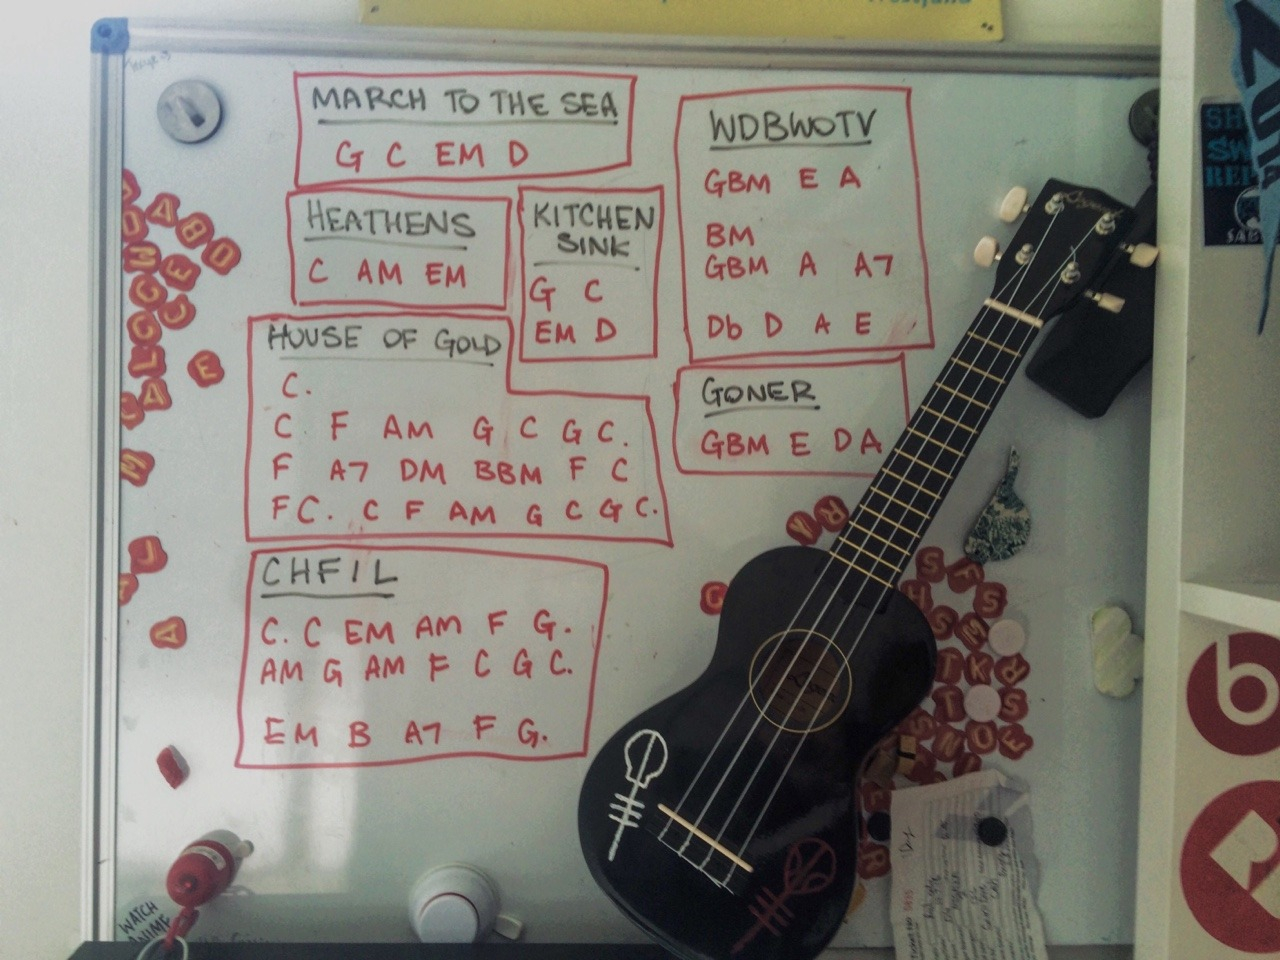 Twenty One Pilots Ukulele Chords Twenty Ne Pilts Some Twenty One Pilots Songs My Ukulele Chord